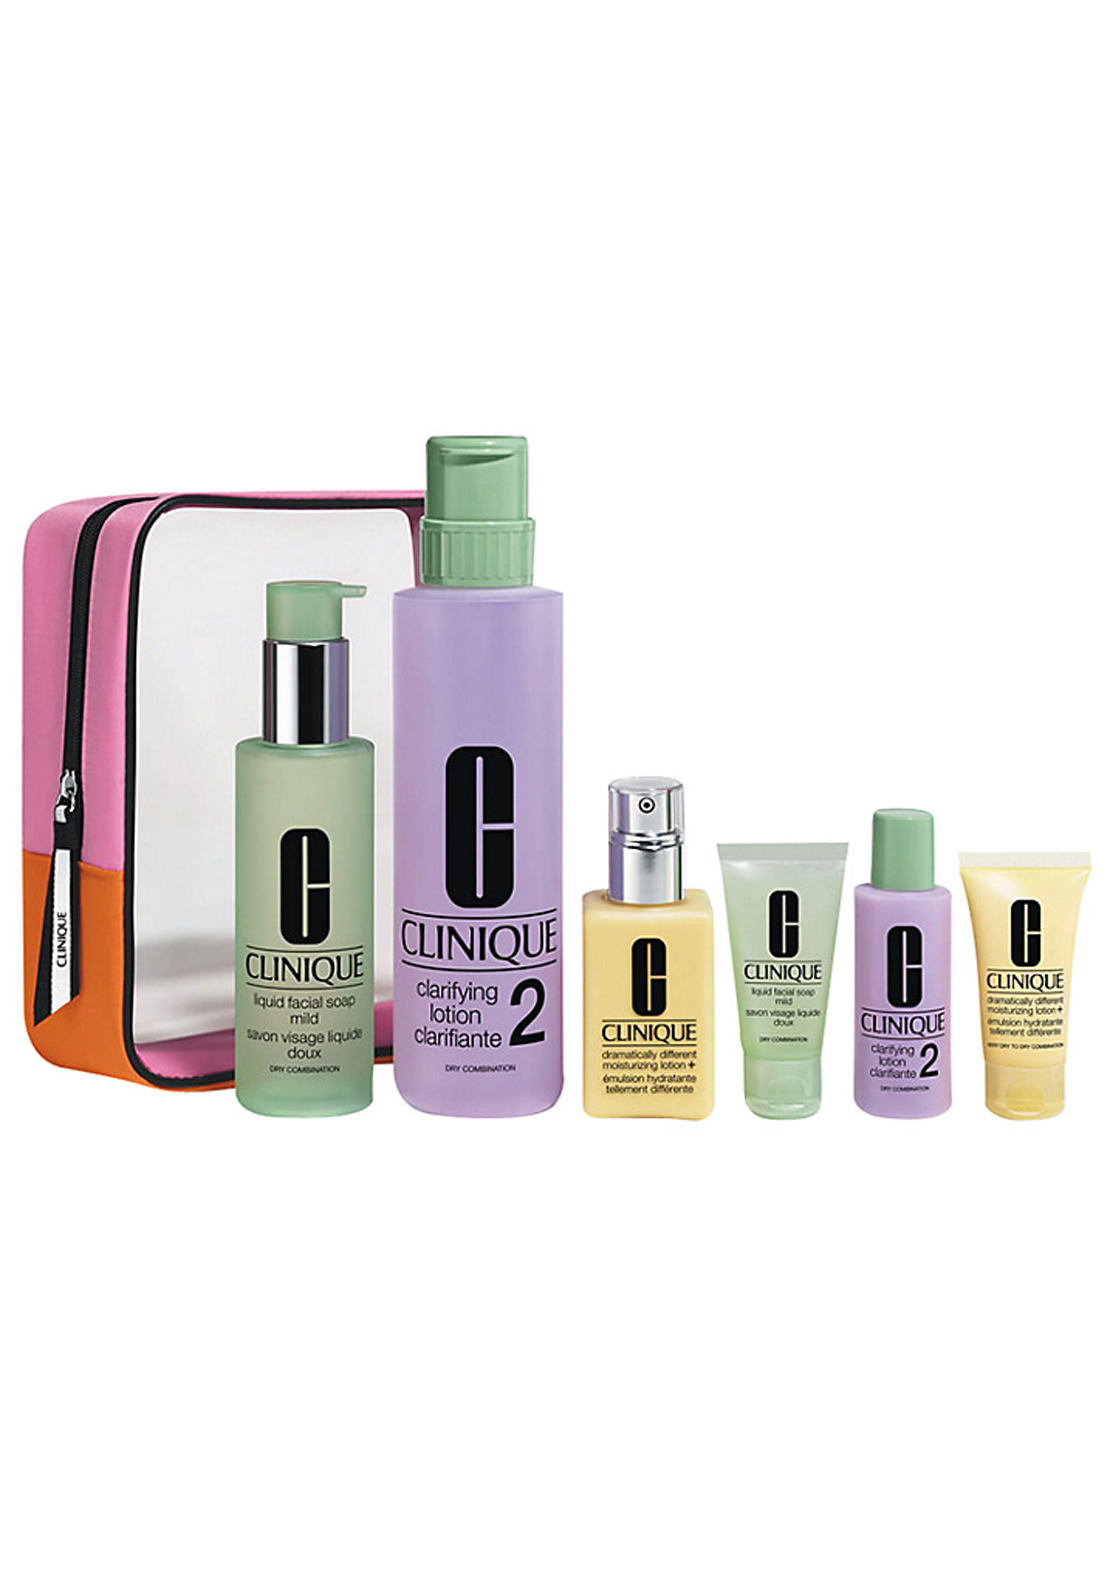 Clinique Great Skin Everywhere Gift Set